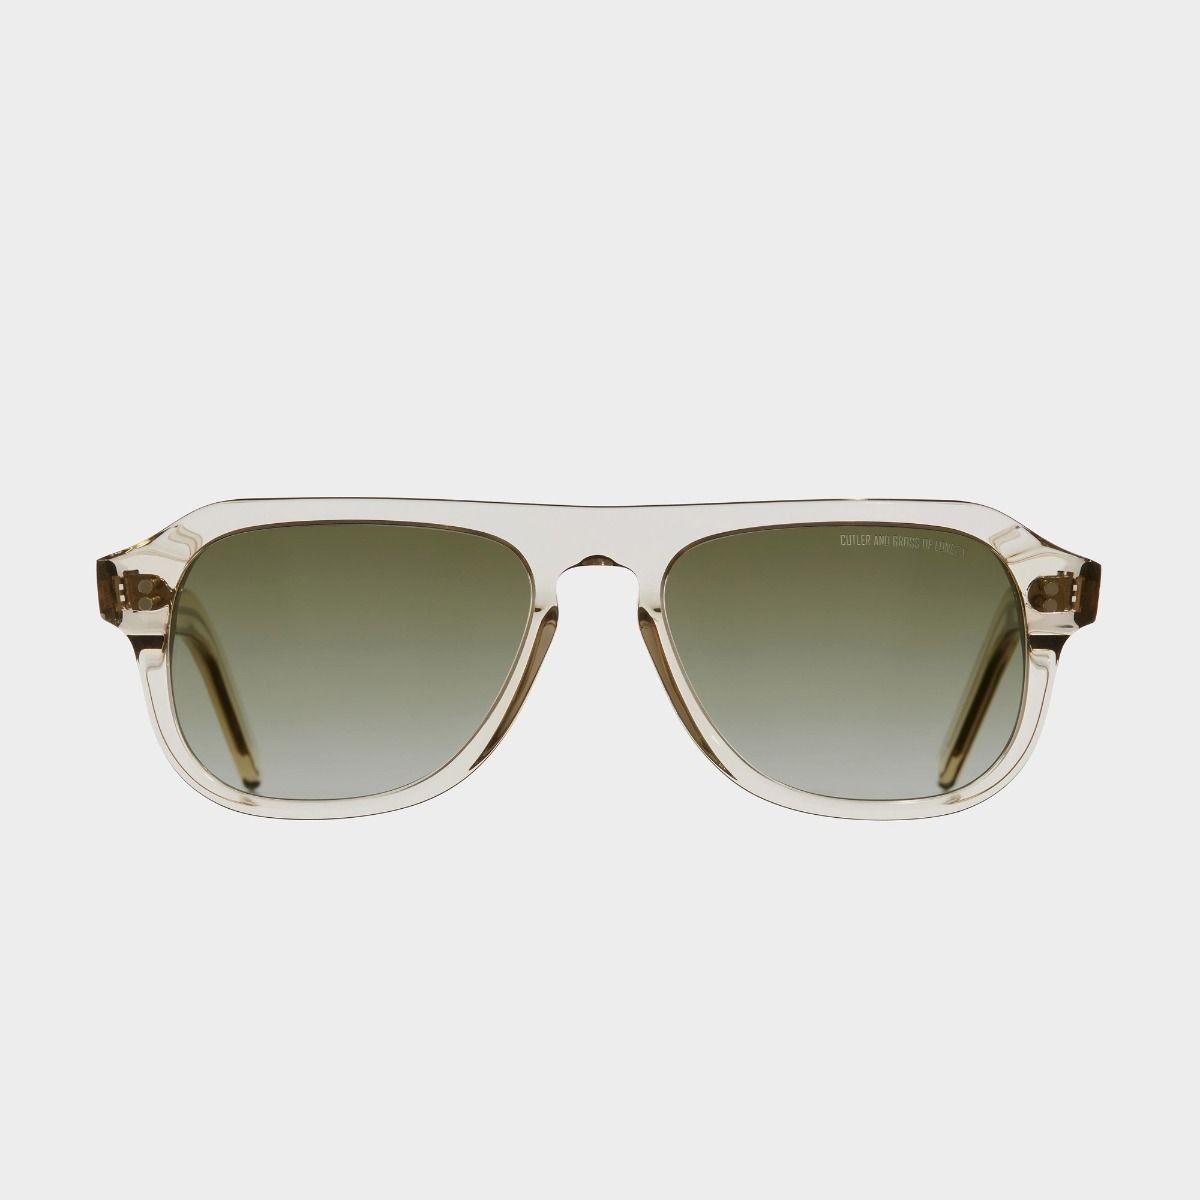 0822V2 Aviator Sunglasses-Granny Chic